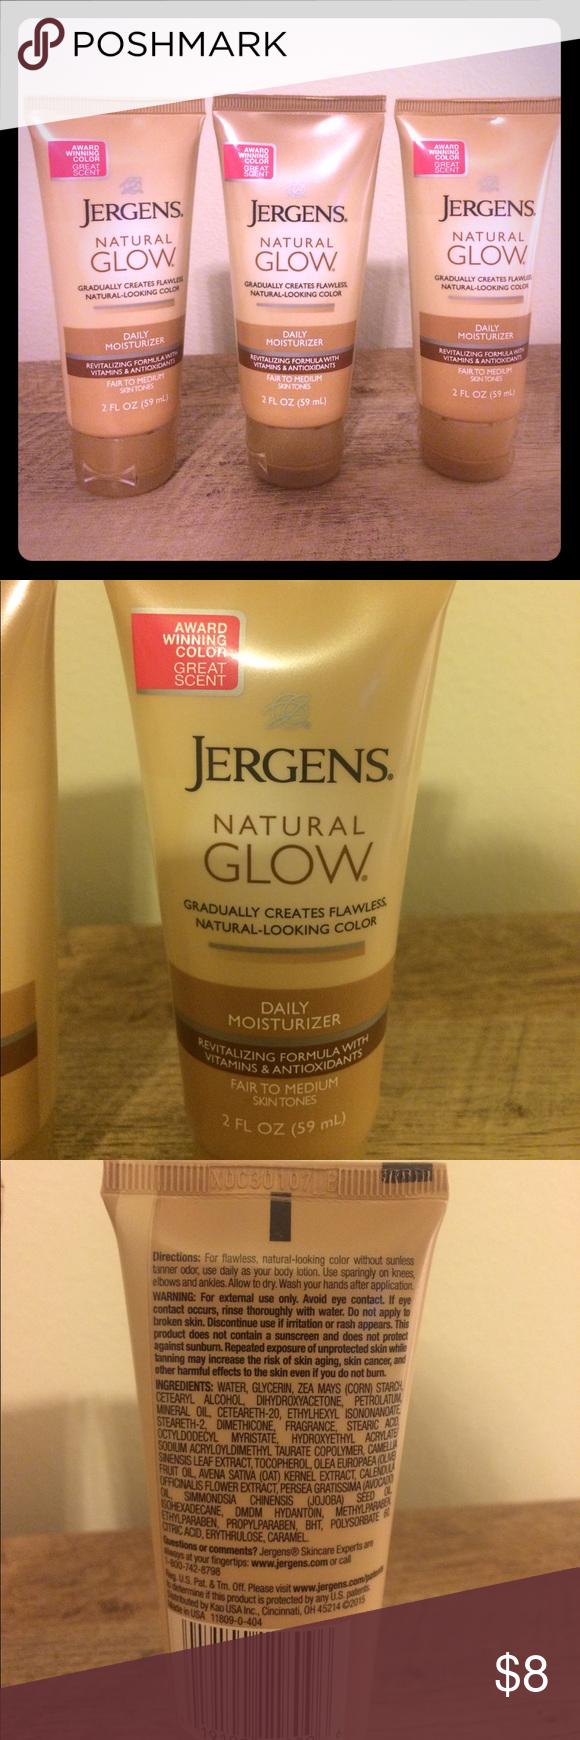 Jergens Natural Glow Lotions Brand New!! Daily moisturizer